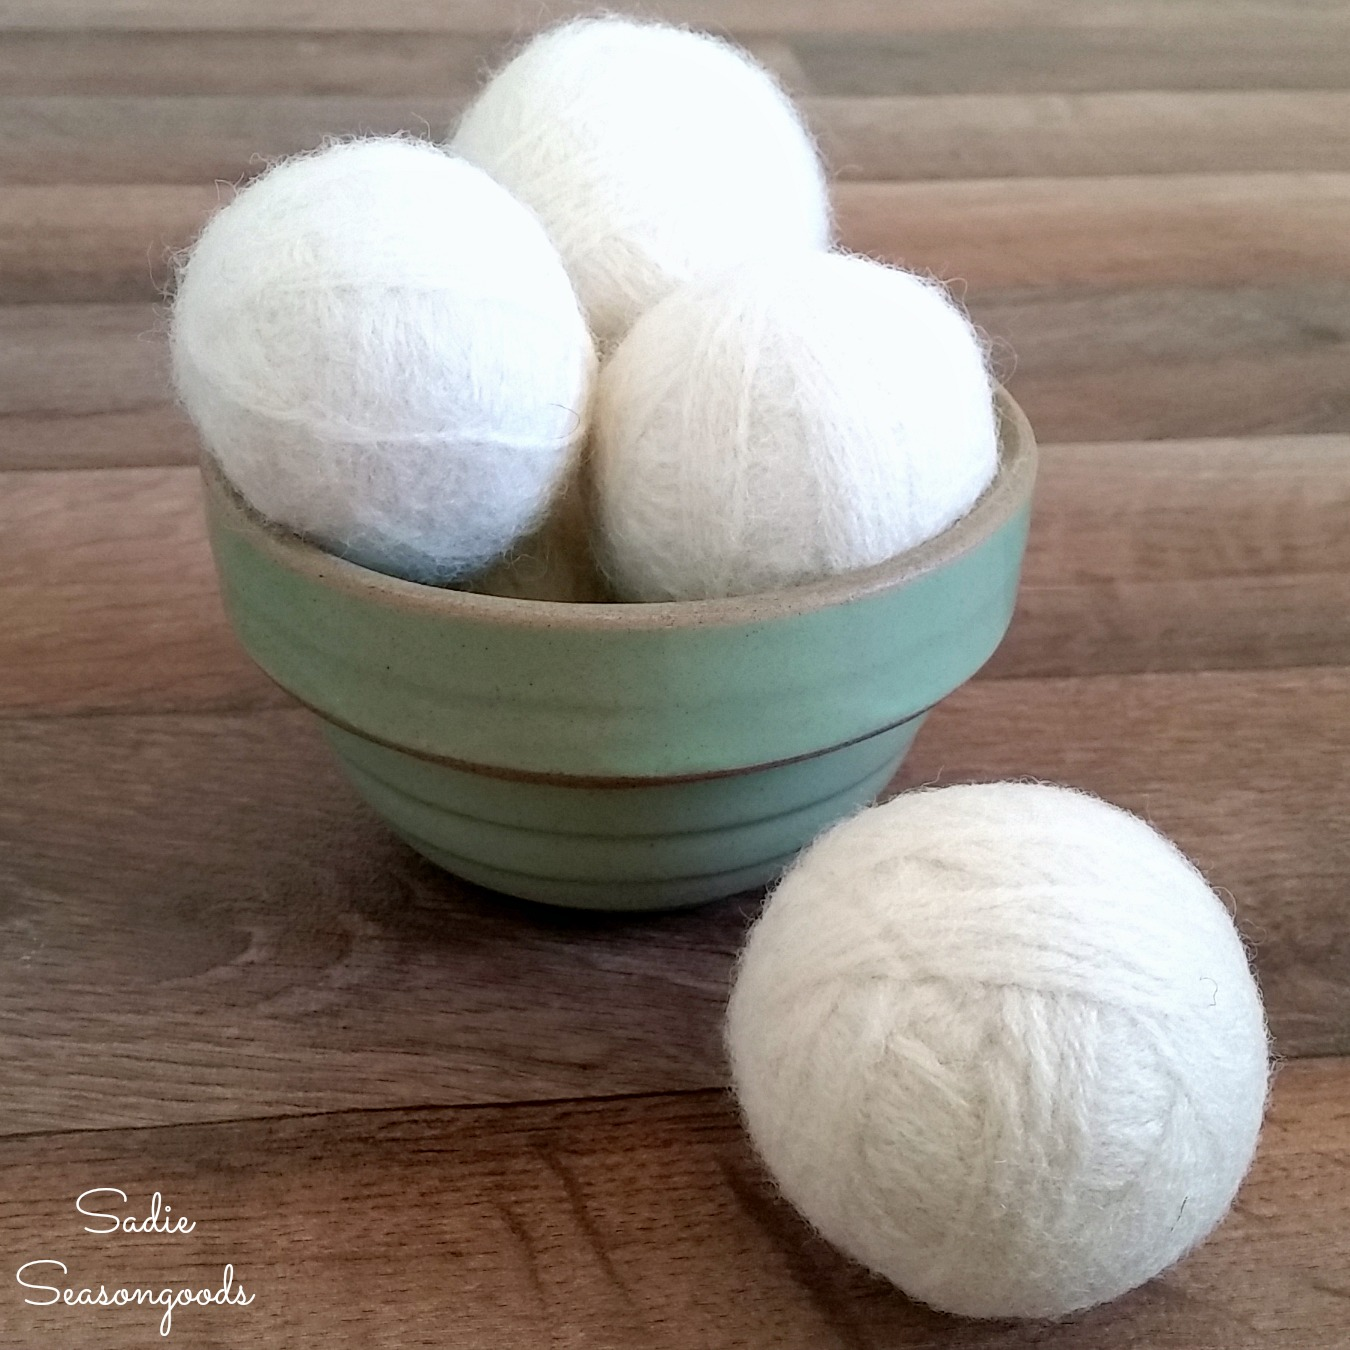 Creating a Green Life with Tumble Dryer Balls as a Natural Fabric Softener